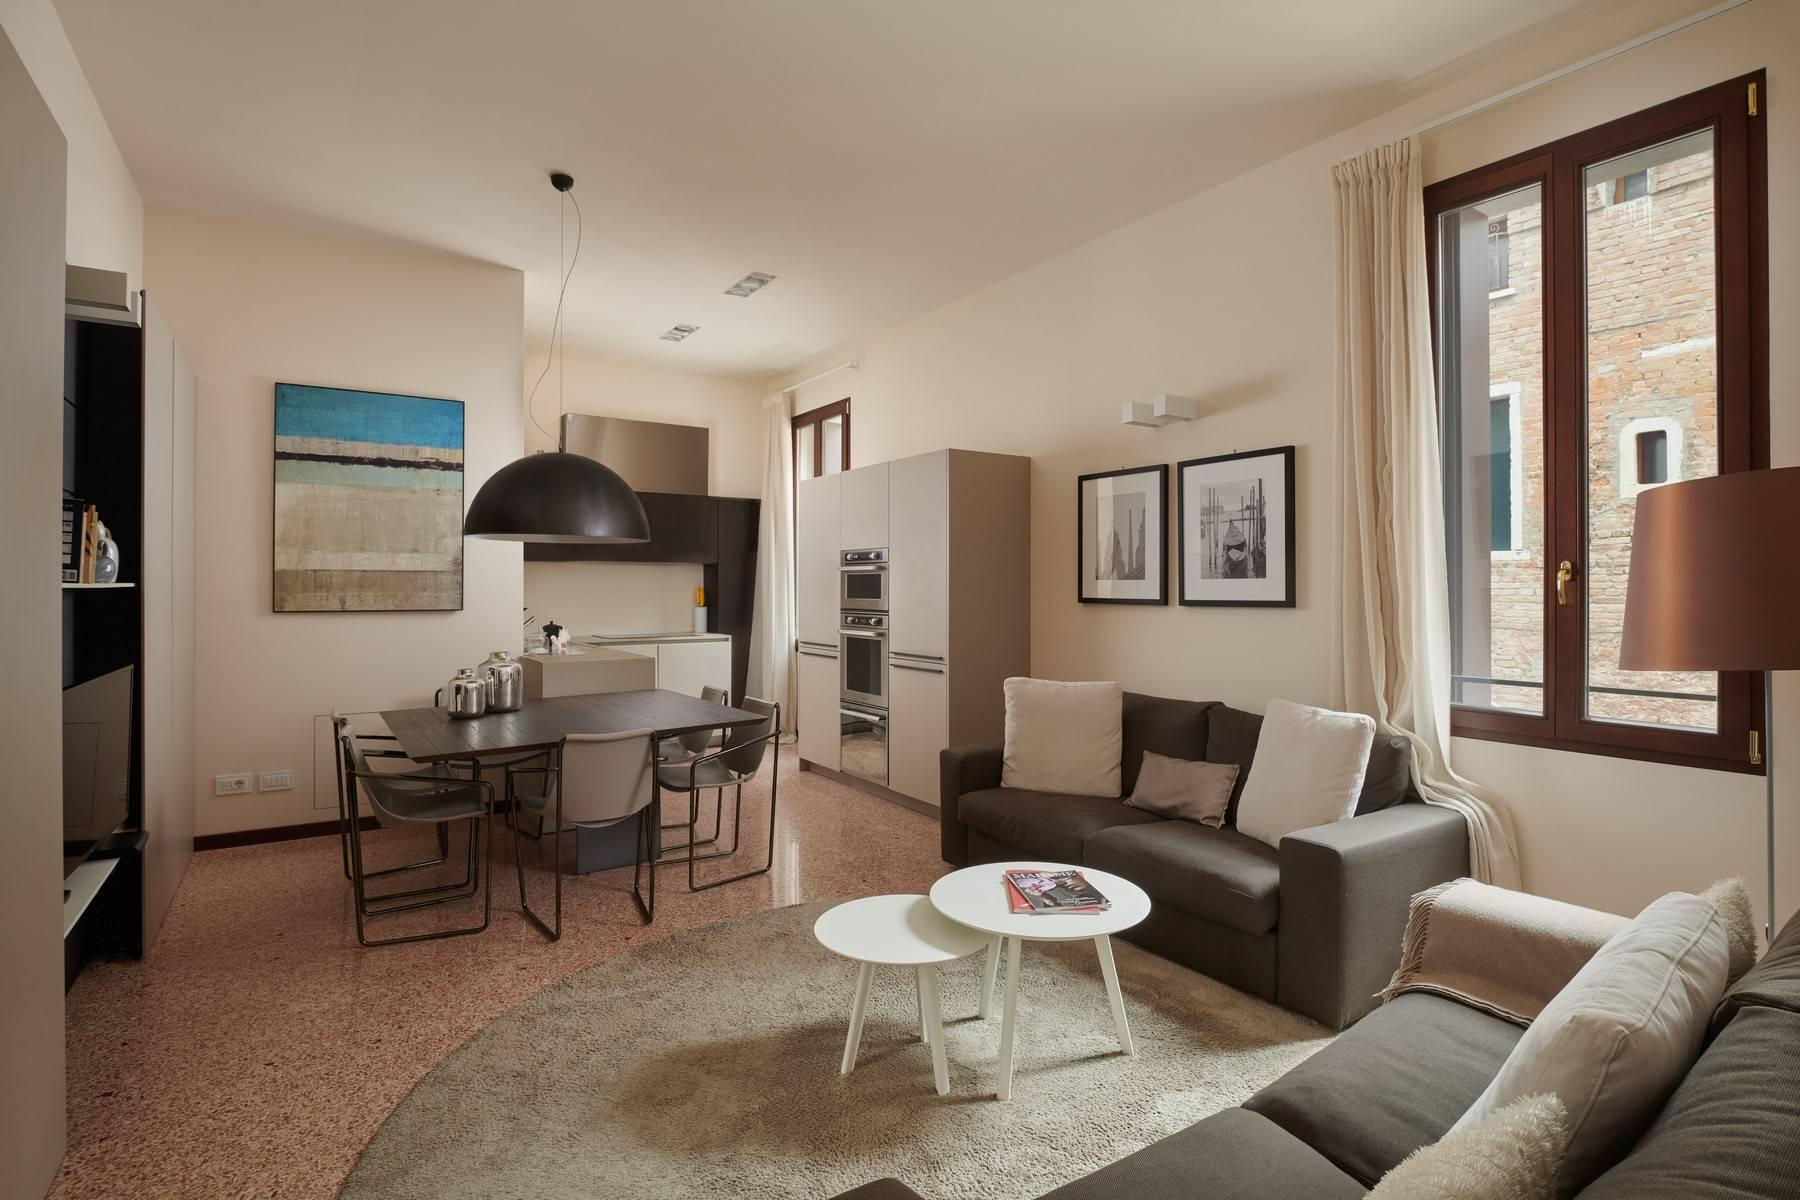 Stylish apartment with private balcony and stunning views - 2